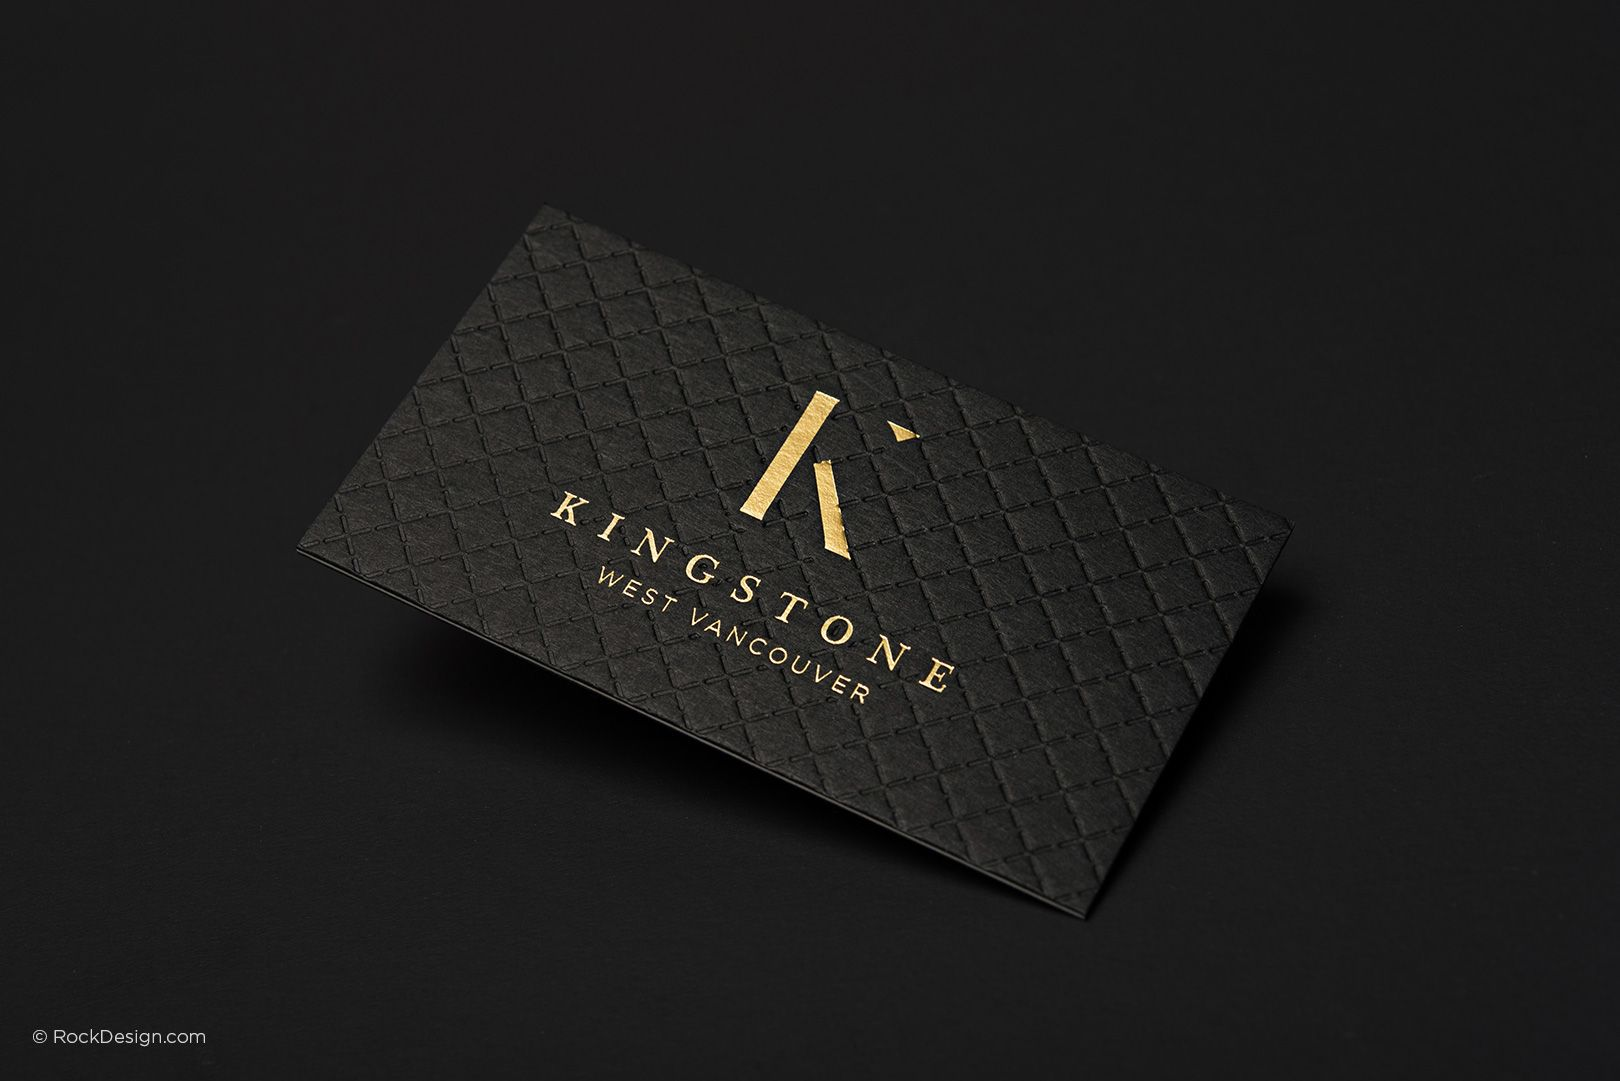 Pin by B3 Creative on Luxury Business Cards | Pinterest | Luxury ...